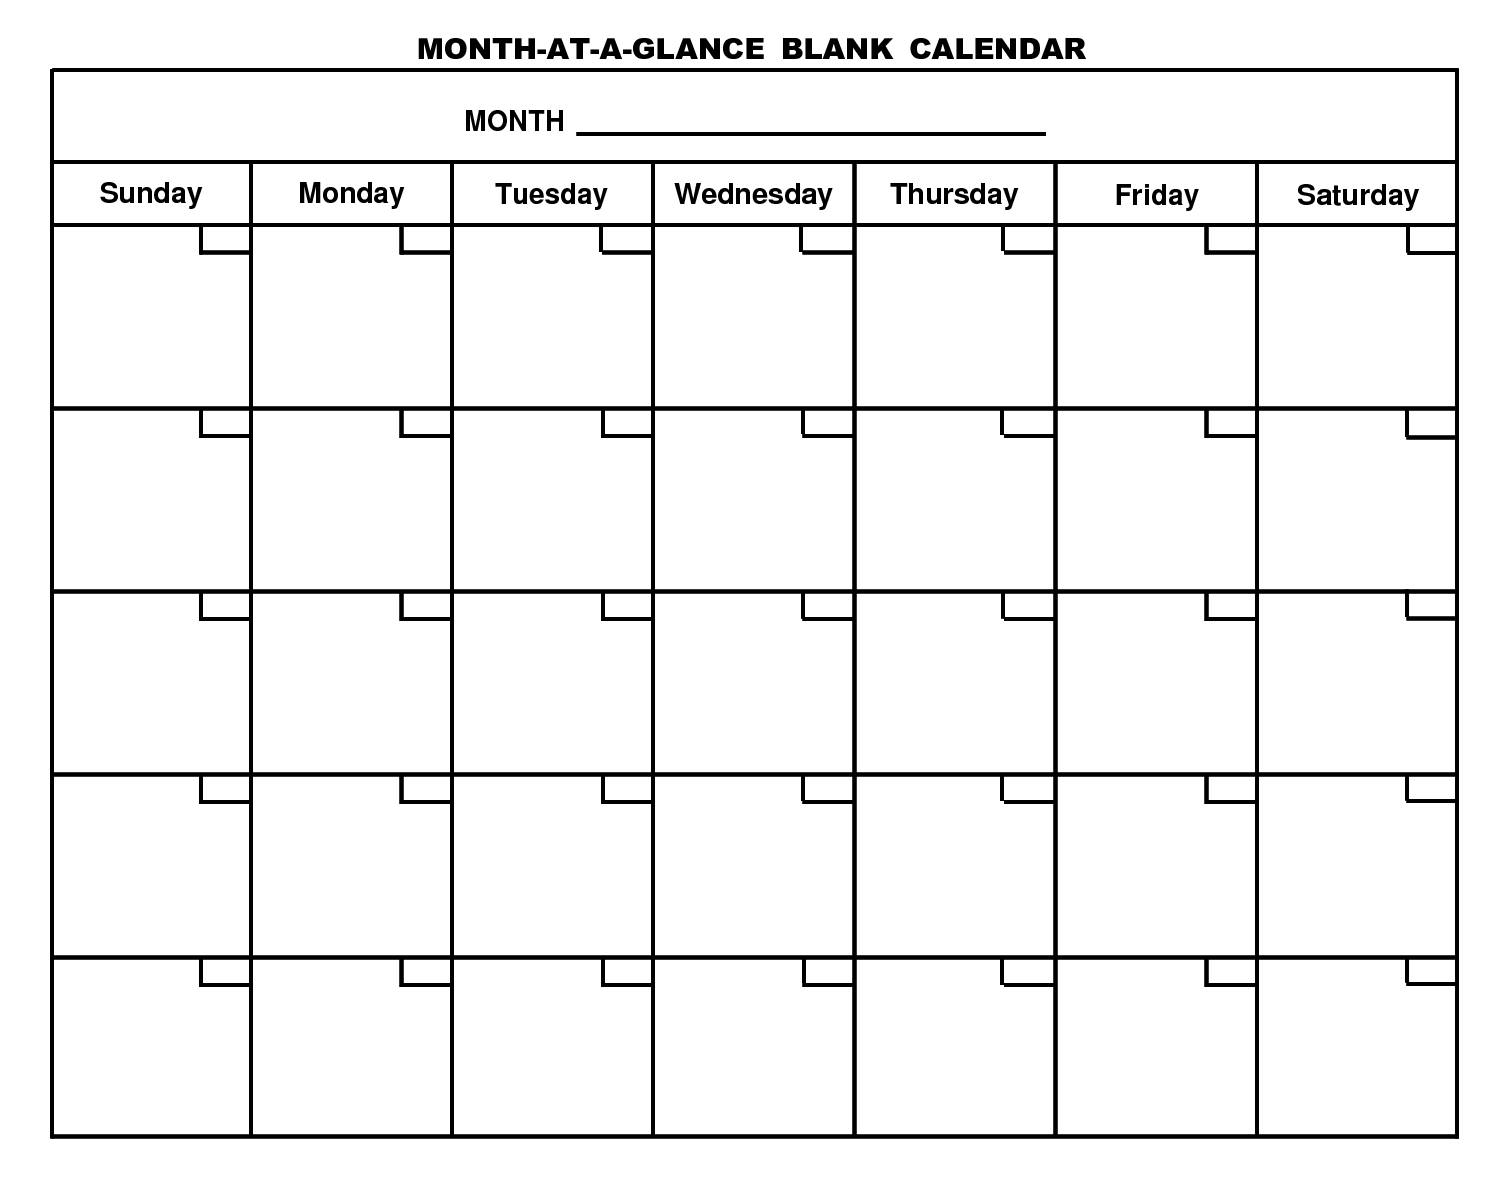 Pin By Stacy Tangren On Work | Printable Blank Calendar-At A Glance Monthly Calendar Printable